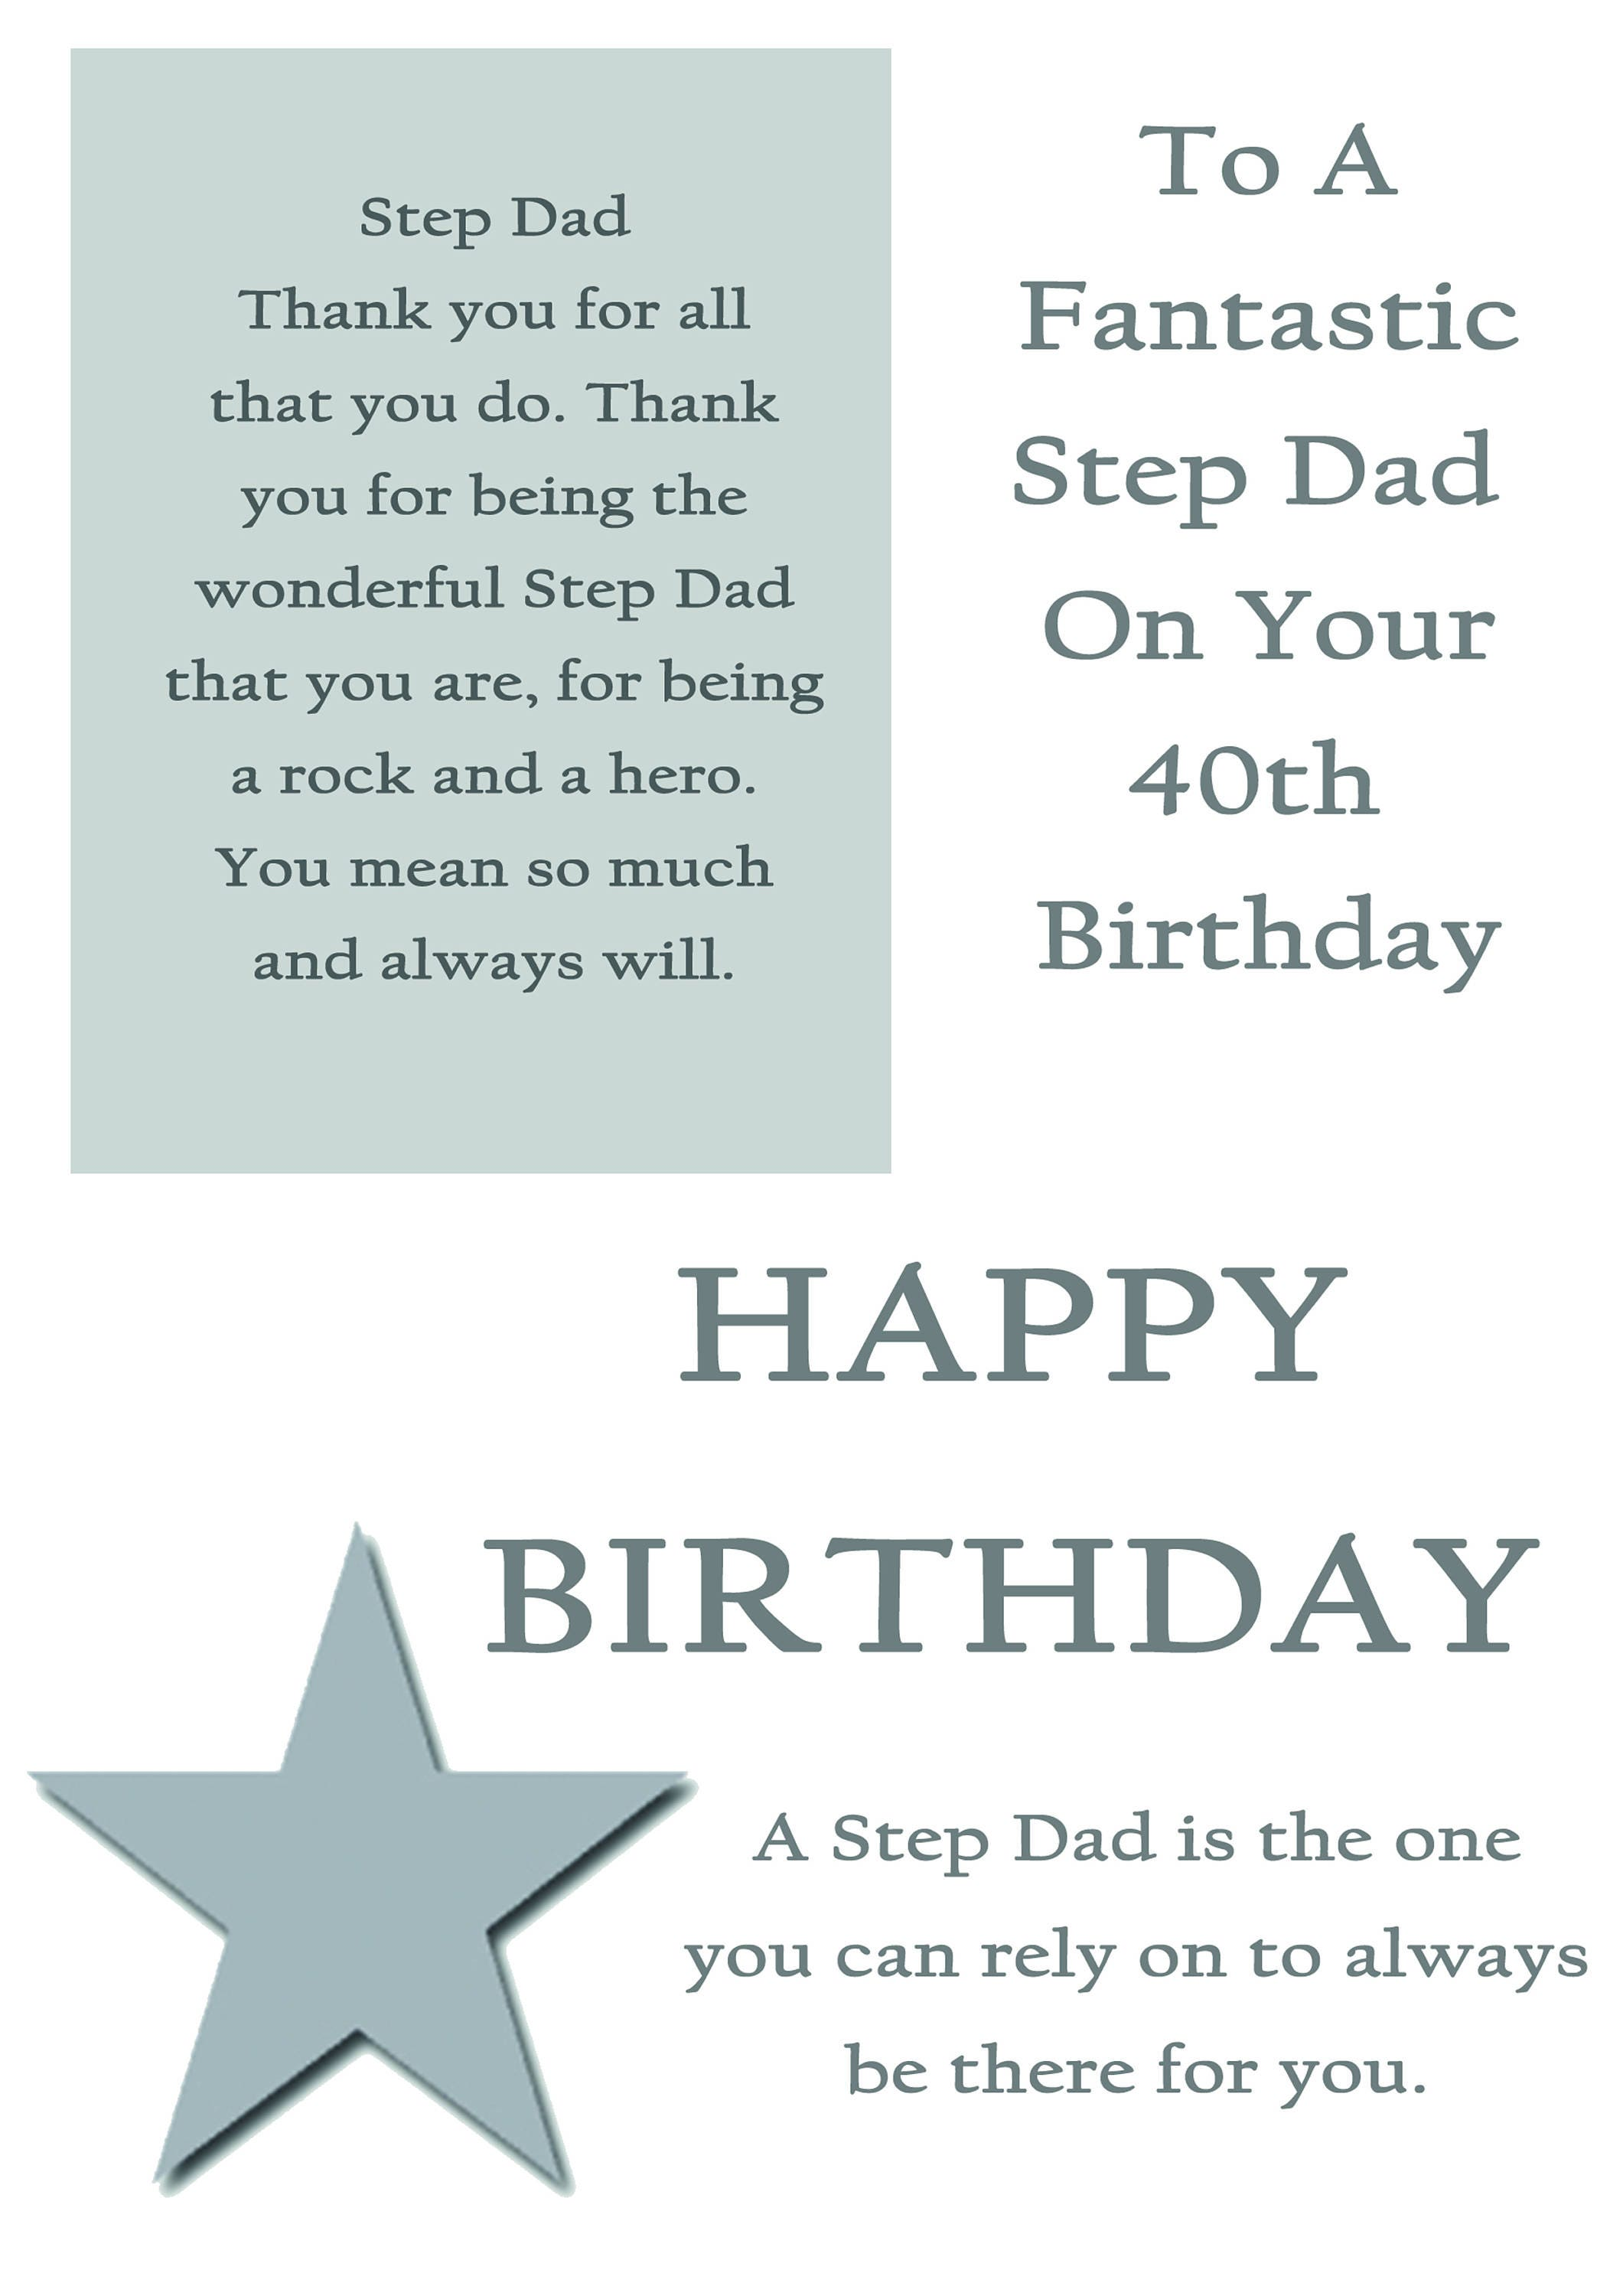 Step Dad 40 Birthday Card With Removable Laminate